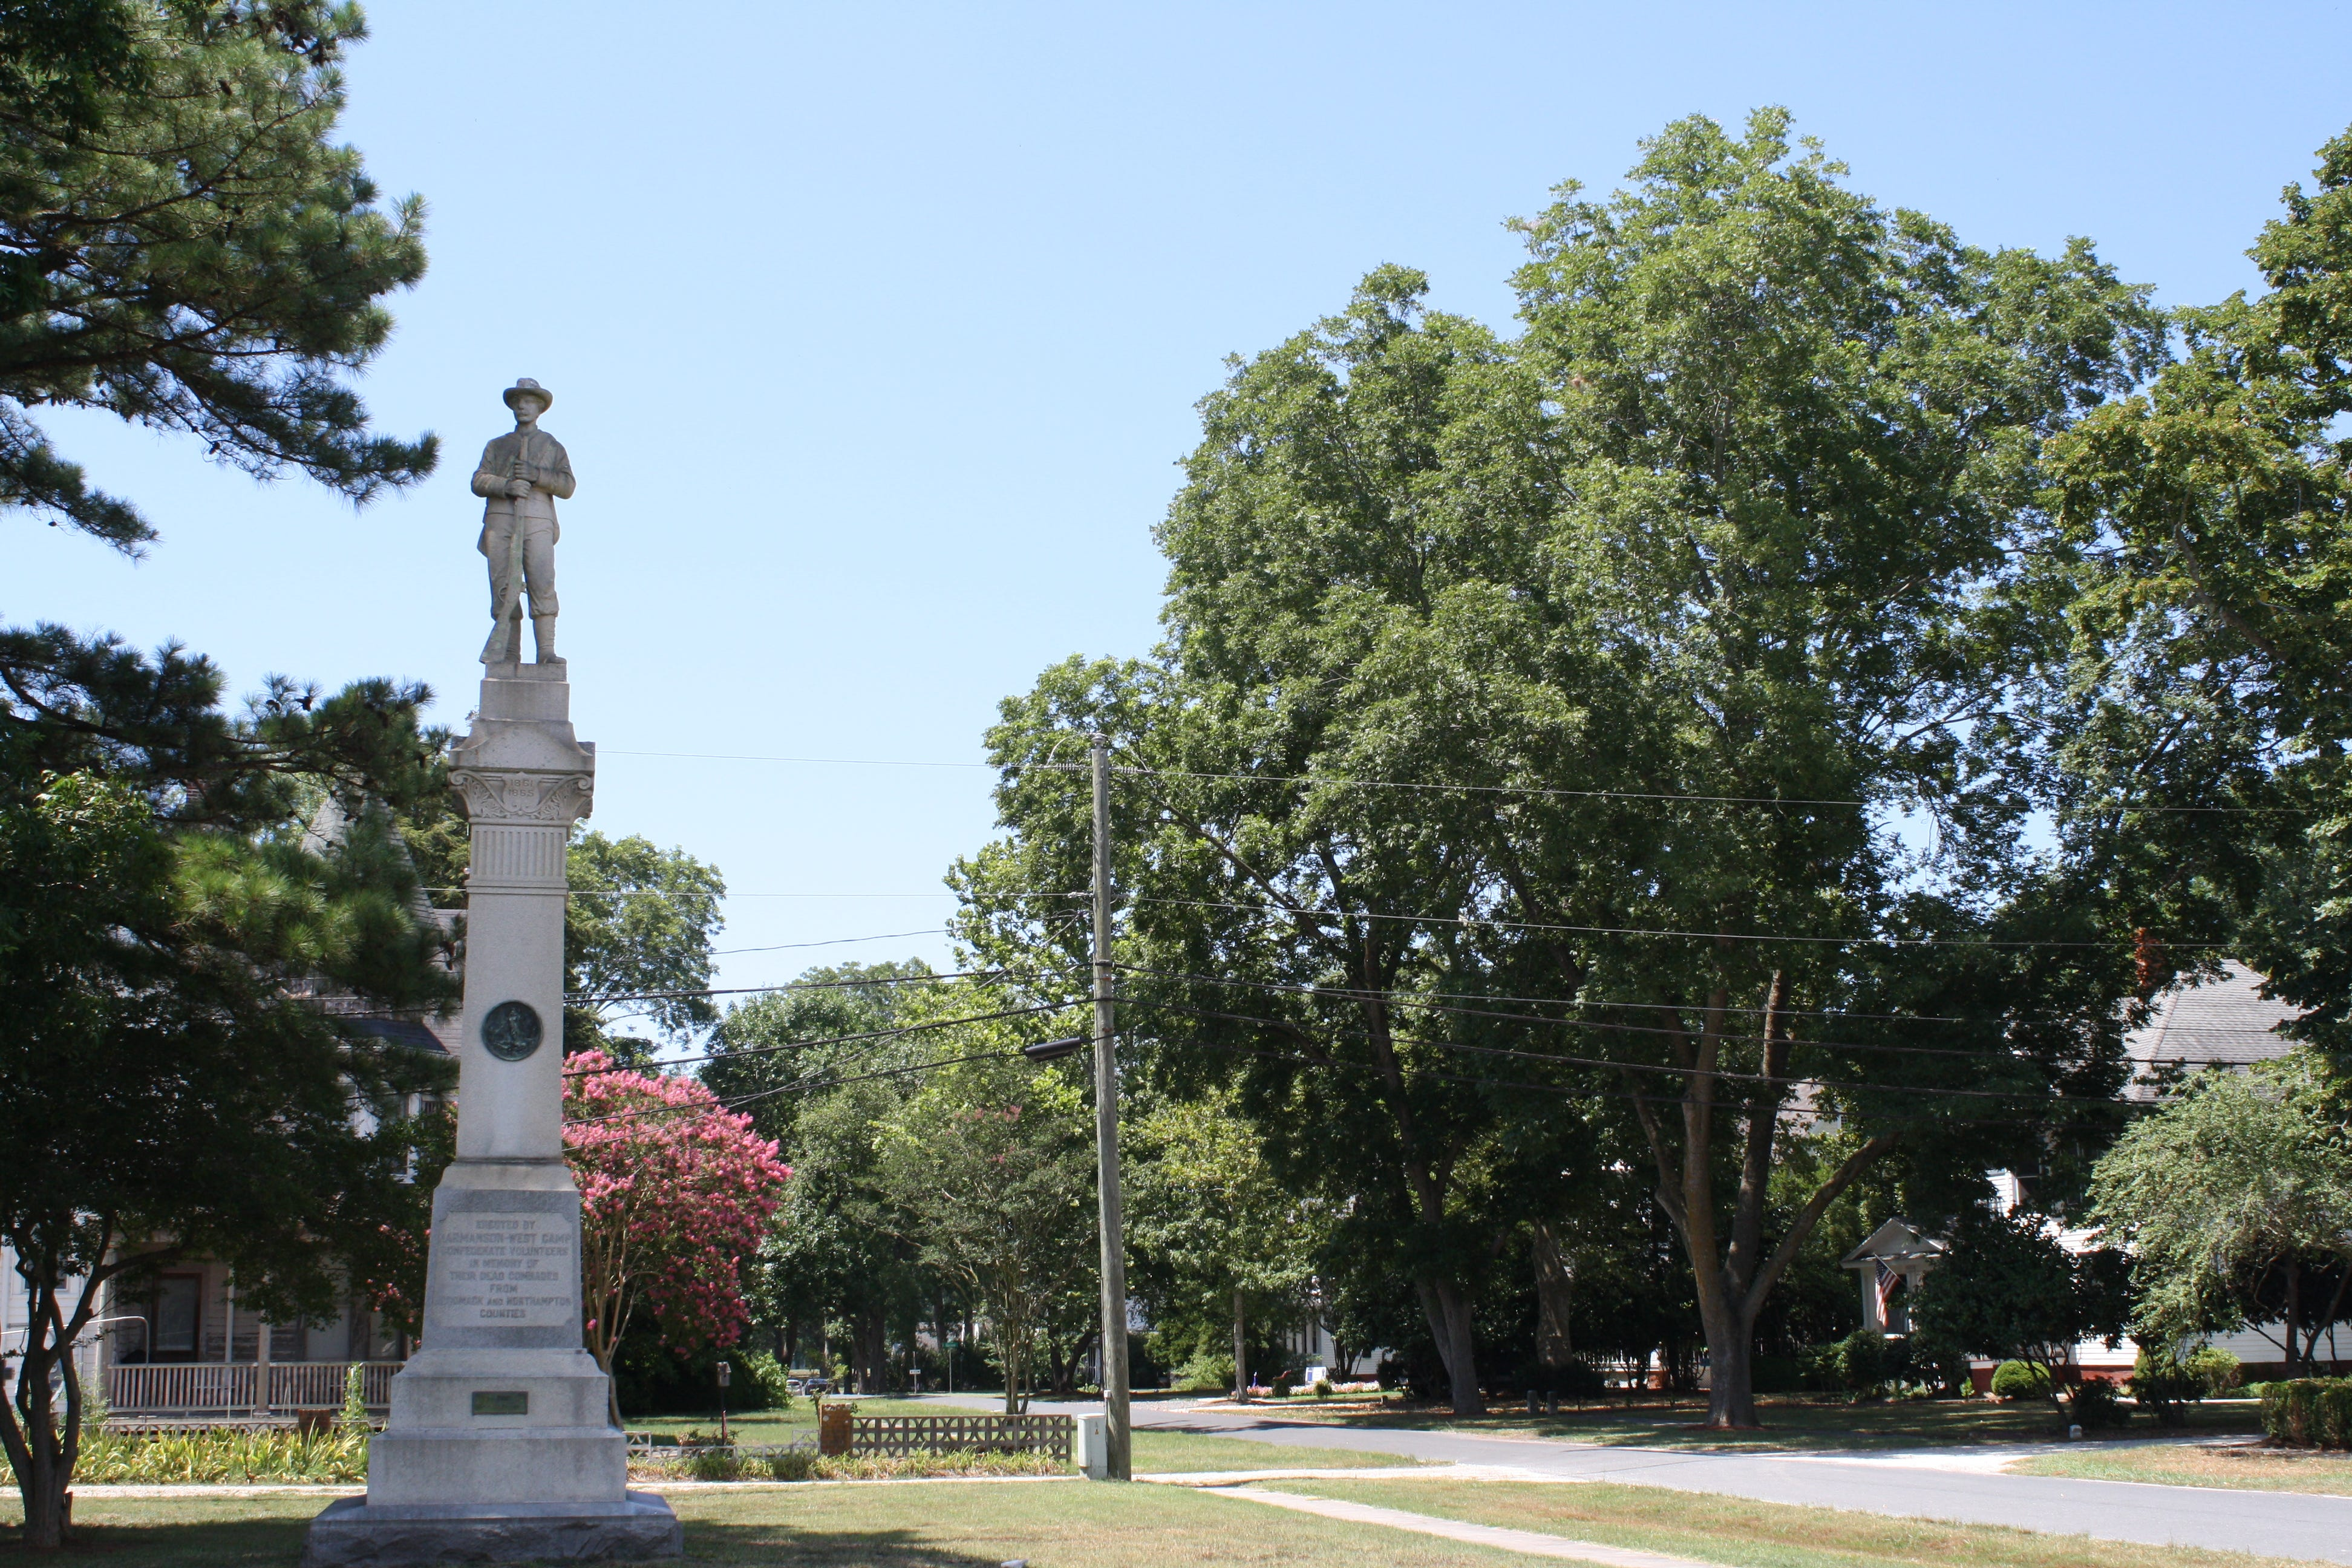 Parksley tried to sell Confederate statue it didn't own for $1